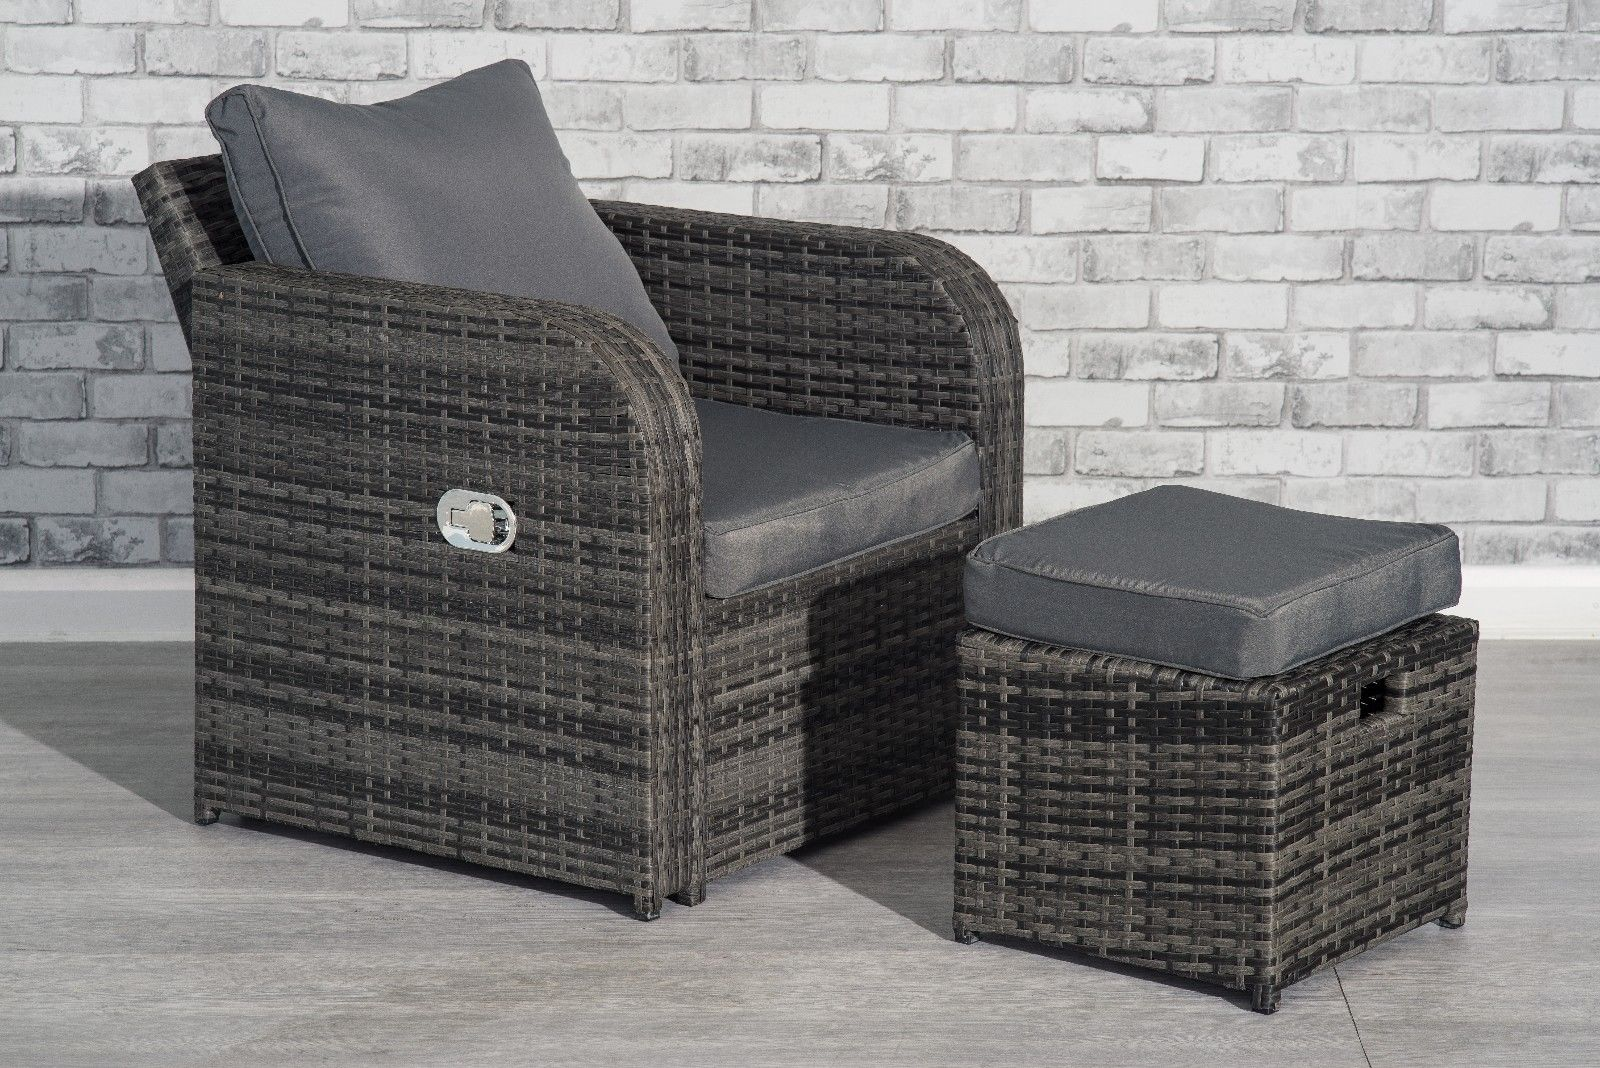 Grey Rattan Garden Furniture Set Sofa Reclining Chairs Conservatory Outdoor New End User